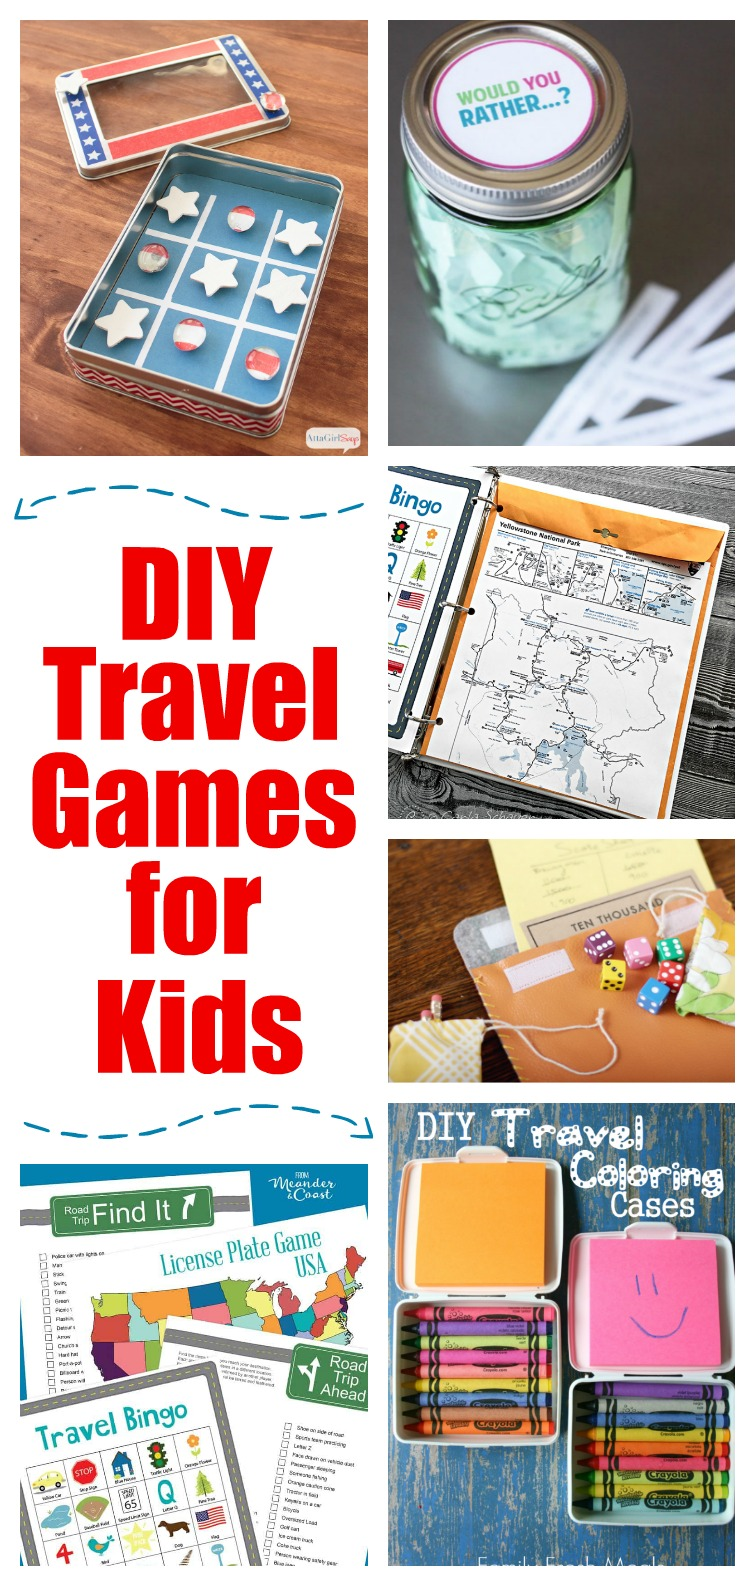 Keep kids and tweens off their screens and occupied on long summer road trips with these DIY travel games for kids. Road trip bingo, travel games, activities, printables and more. #roadtrip #kidsactivities #travelbingo #travelgames